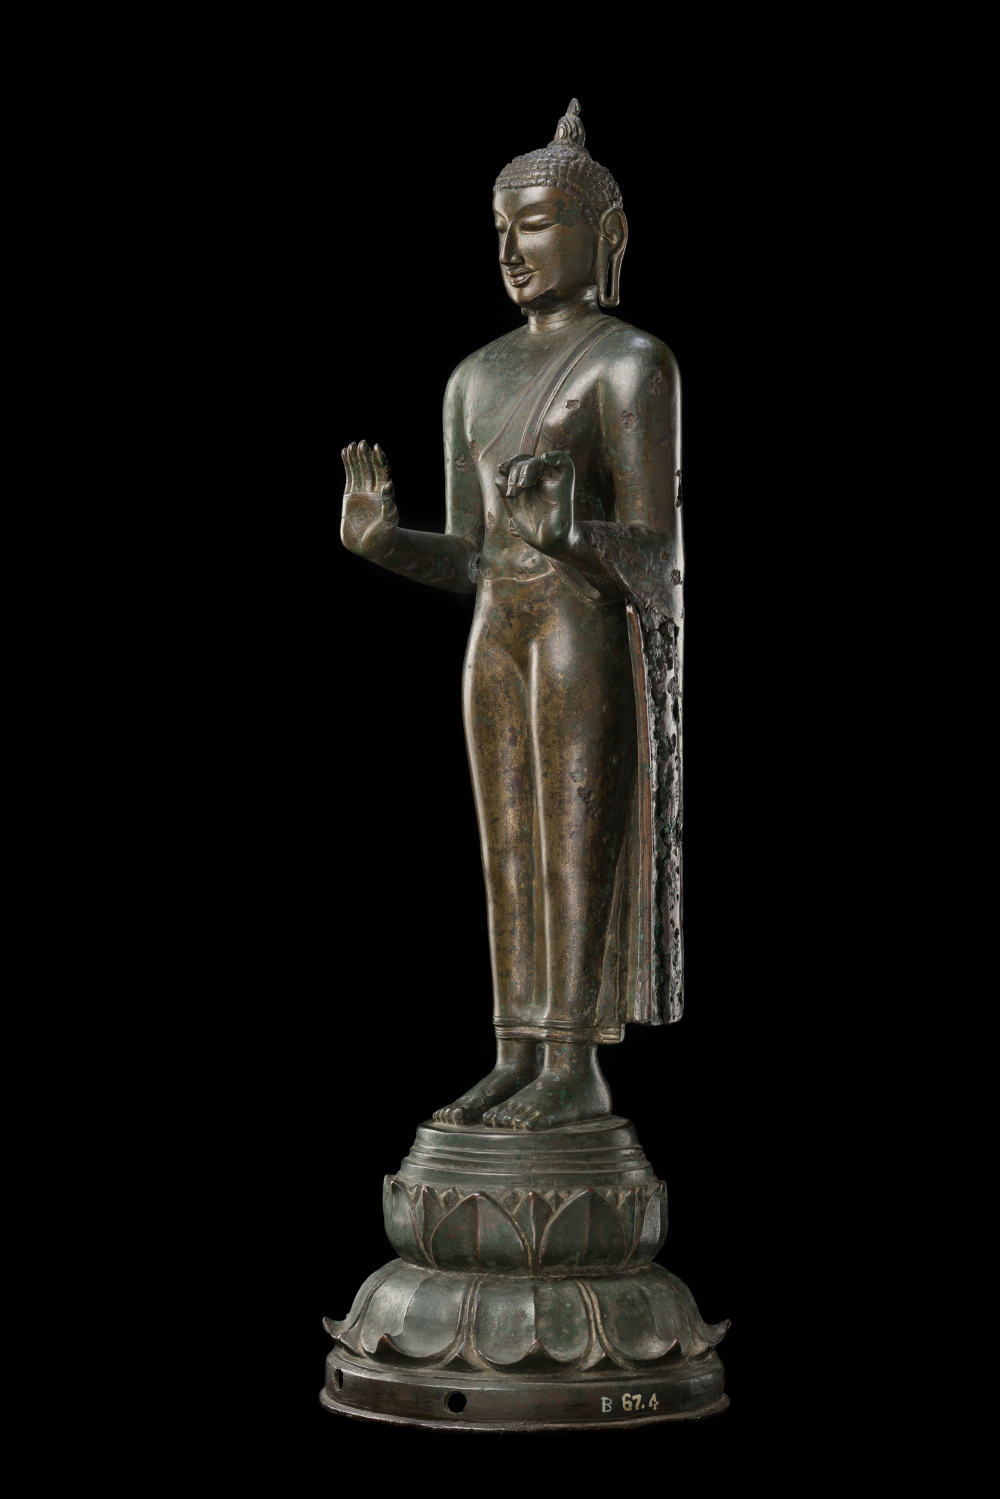 Chola Buddha - BronzeAD 900–1000 Nagapattinam, Tamil Nadu, IndiaGift from the Collection of Smt. Amravati Gupta CSMVS, Mumbai This statue comes from the port town of Nagapattinam, a leading centre of artistic production of Buddhist imagery during the reign of the Chola dynasty (about AD 880–1279). The flame on top of his ushnisha (cranial protuberance) is symbolic of the wisdom that is believed to have emerged during his meditation. The iconography of the flaming ushnisha directly influenced the images of the Buddha in Sri Lanka, from where it spread to East and Southeast Asia.